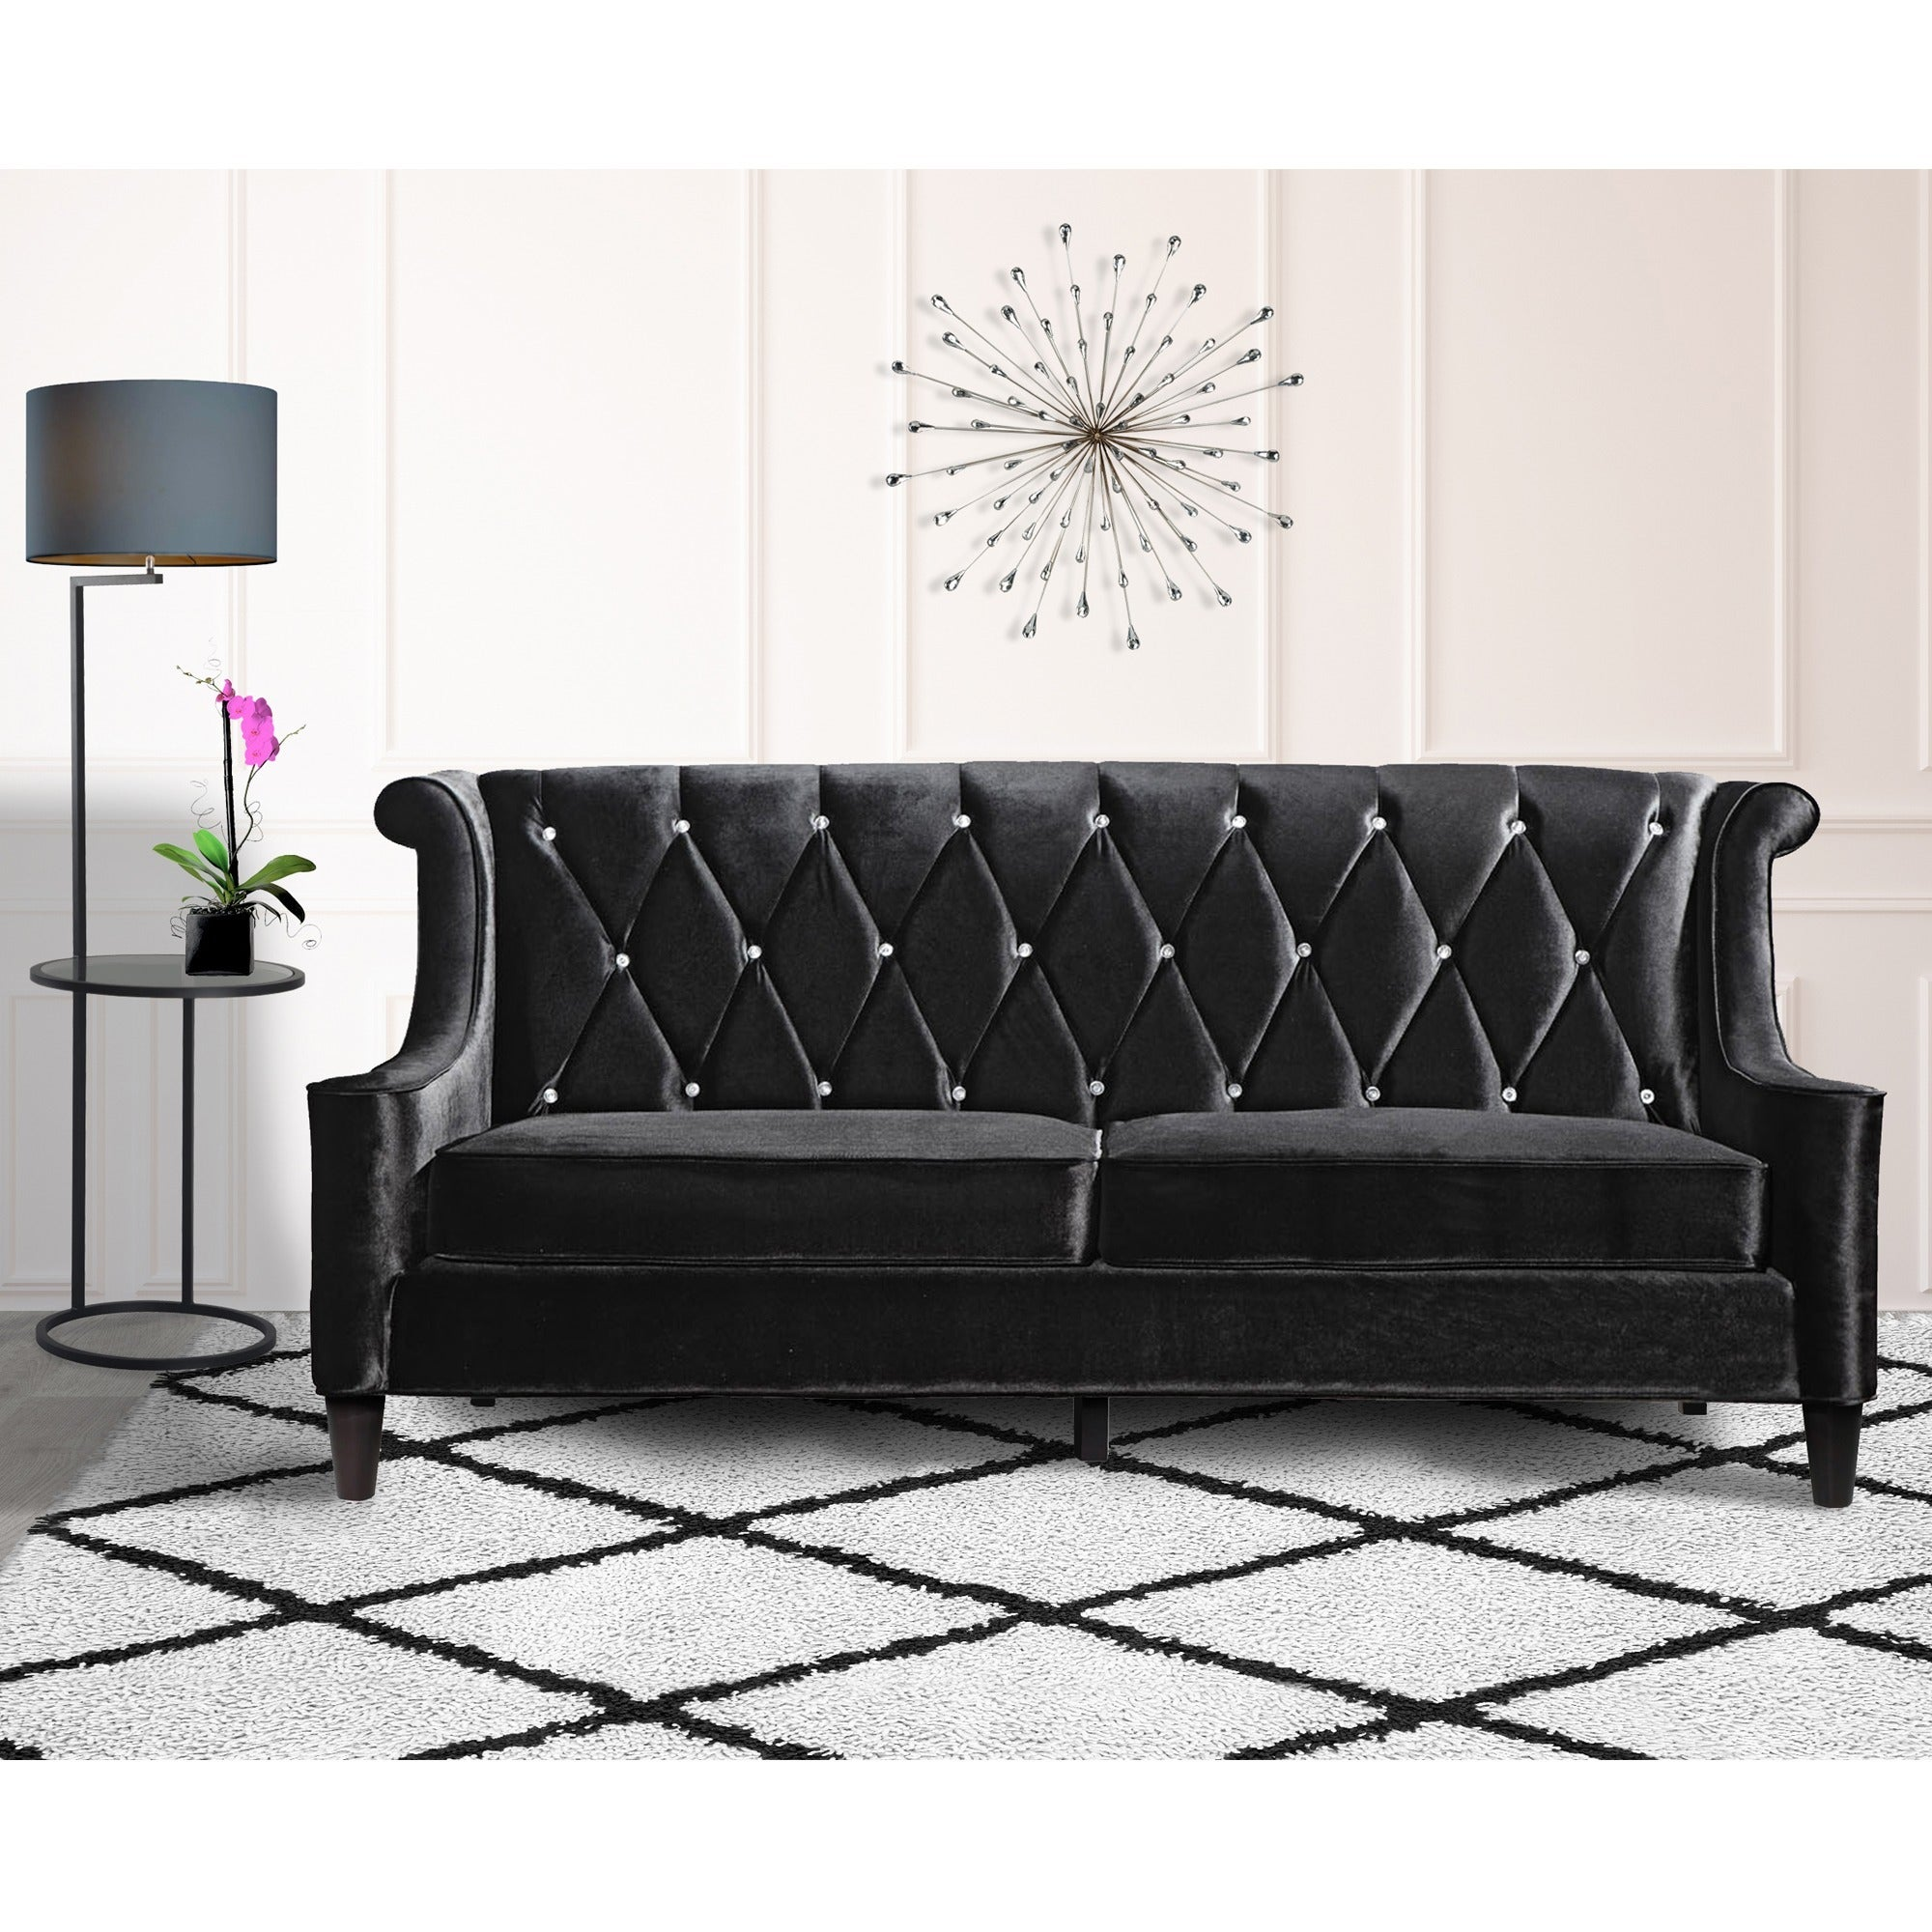 Shop Armen Living Barrister Modern Black Velvet Sofa with Crystal ...